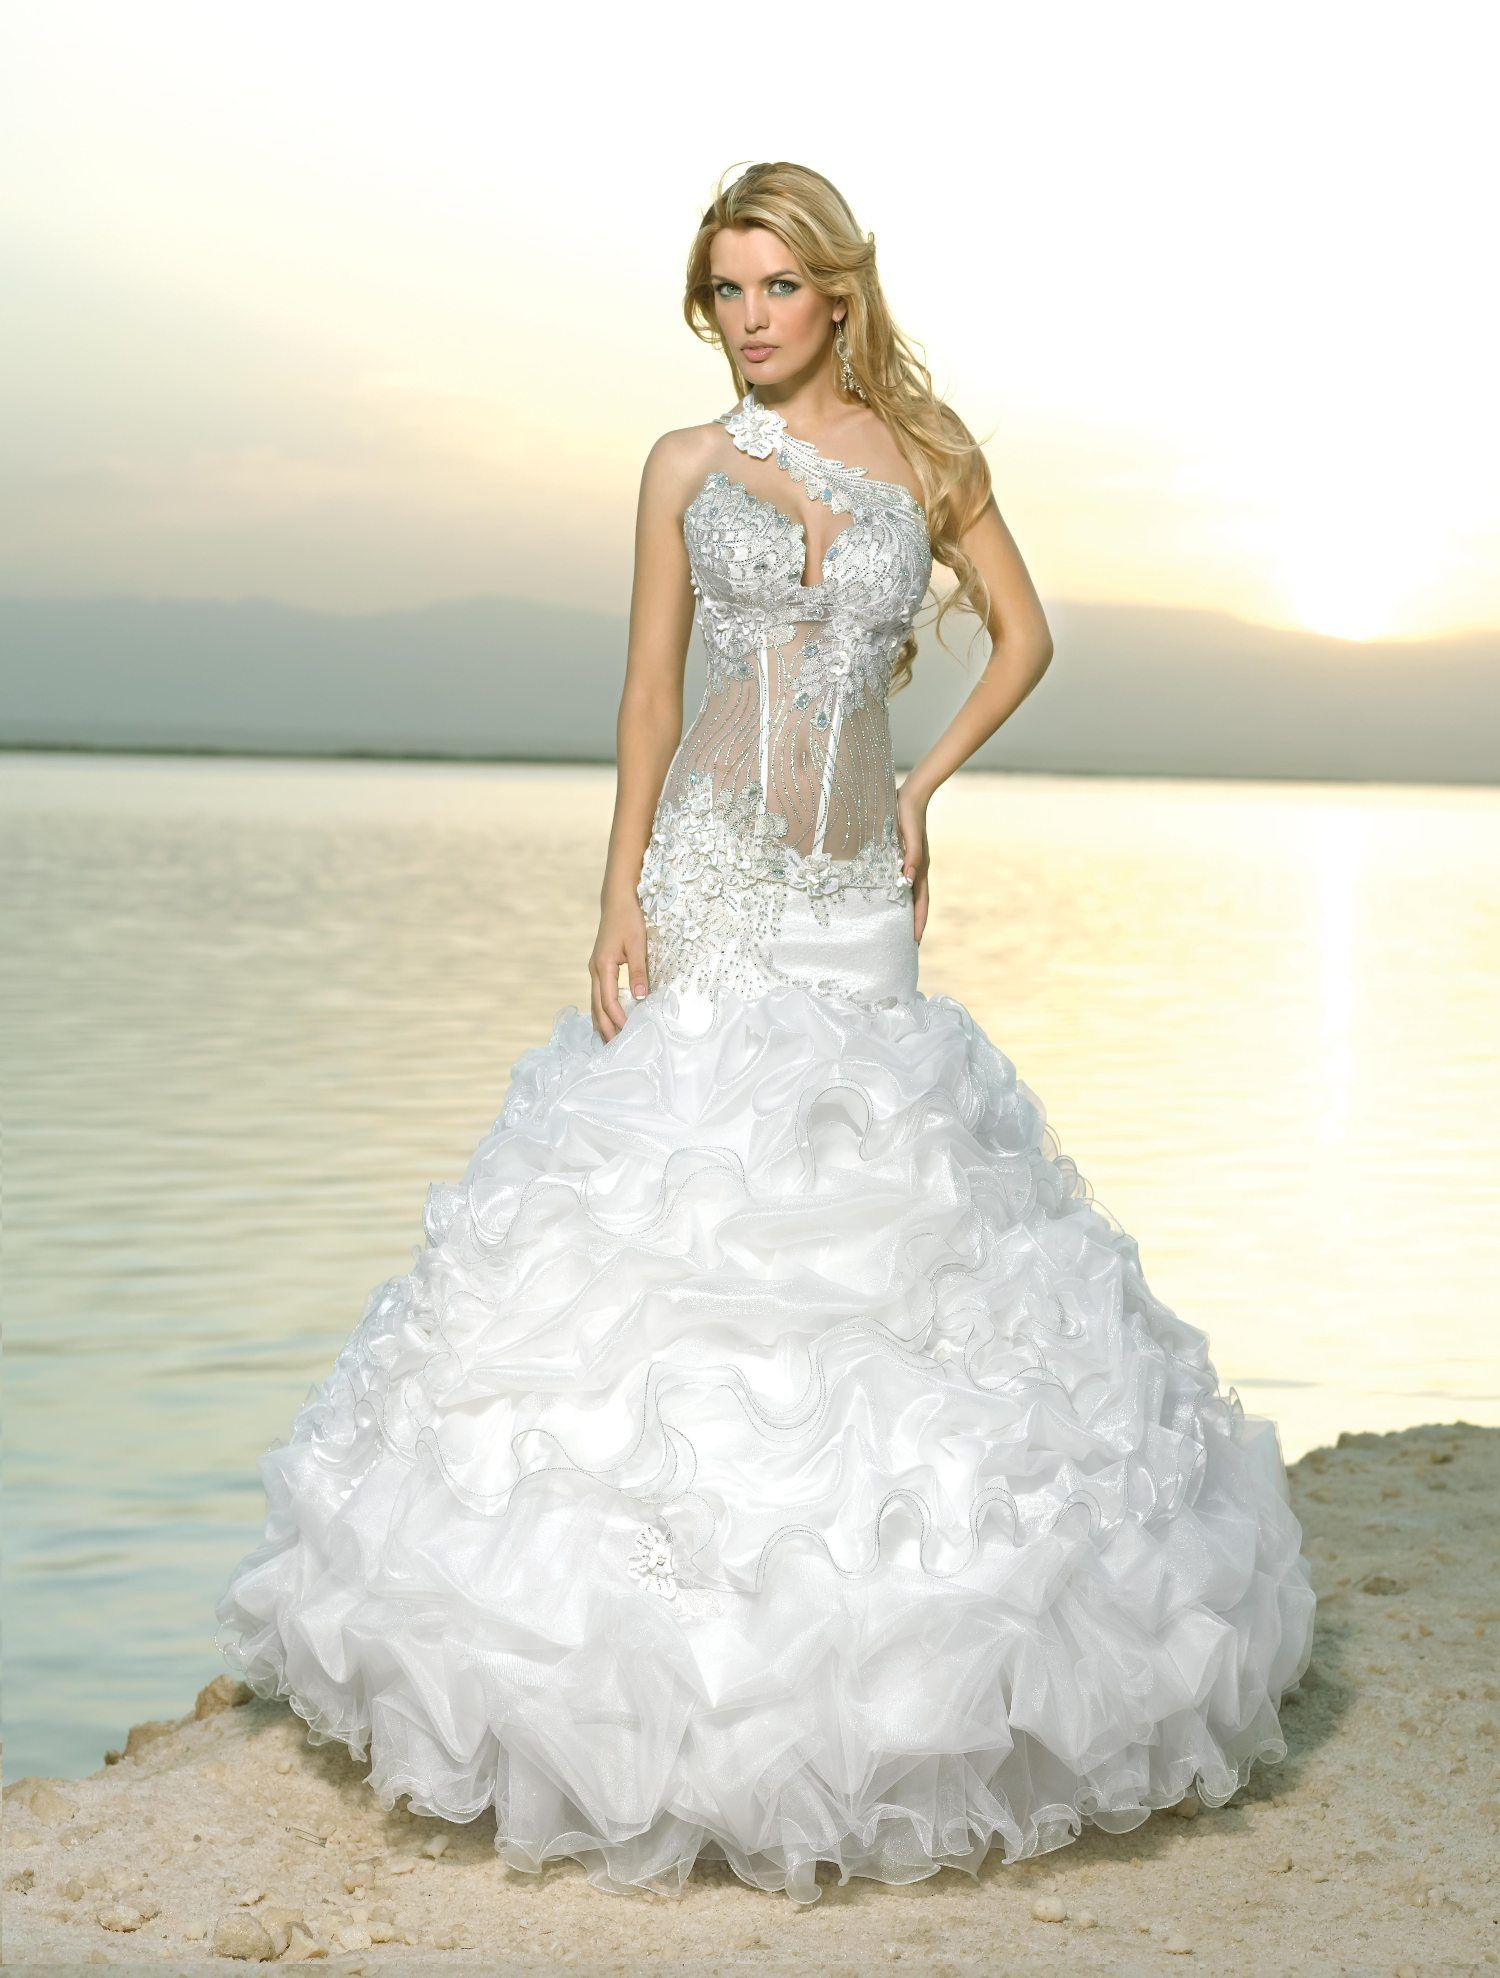 Cheap Wedding Gowns Toronto: View Dress - Lady Balm - Lady Balm Skirt